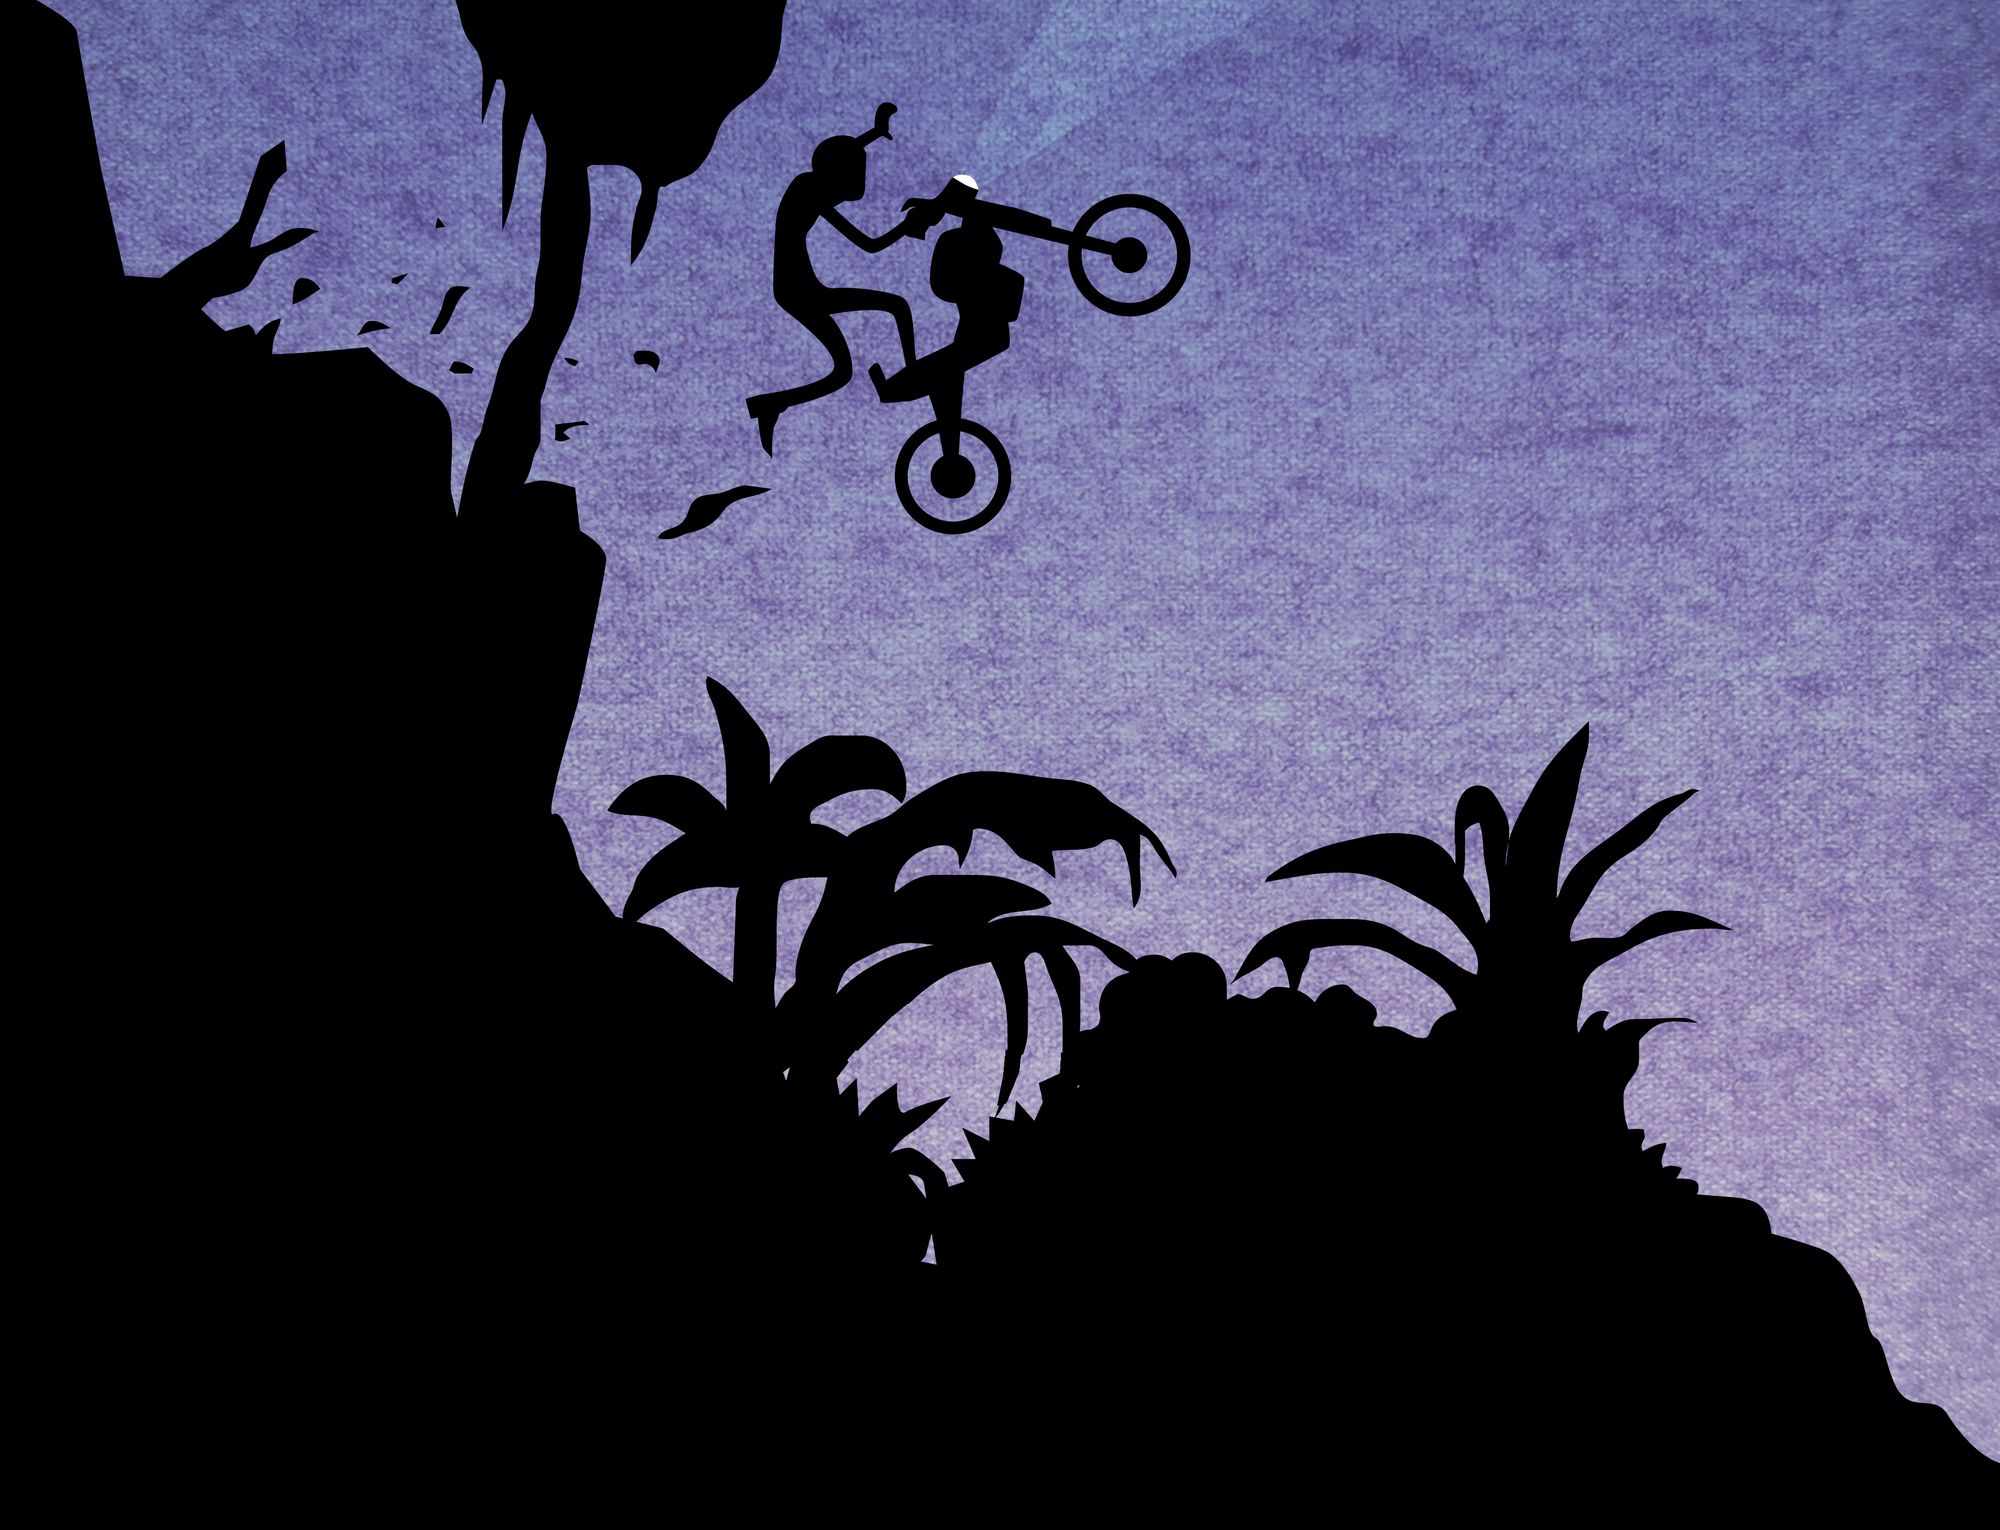 Image of the siluette of a motocyclist crashing down a slope into a dense thicket.